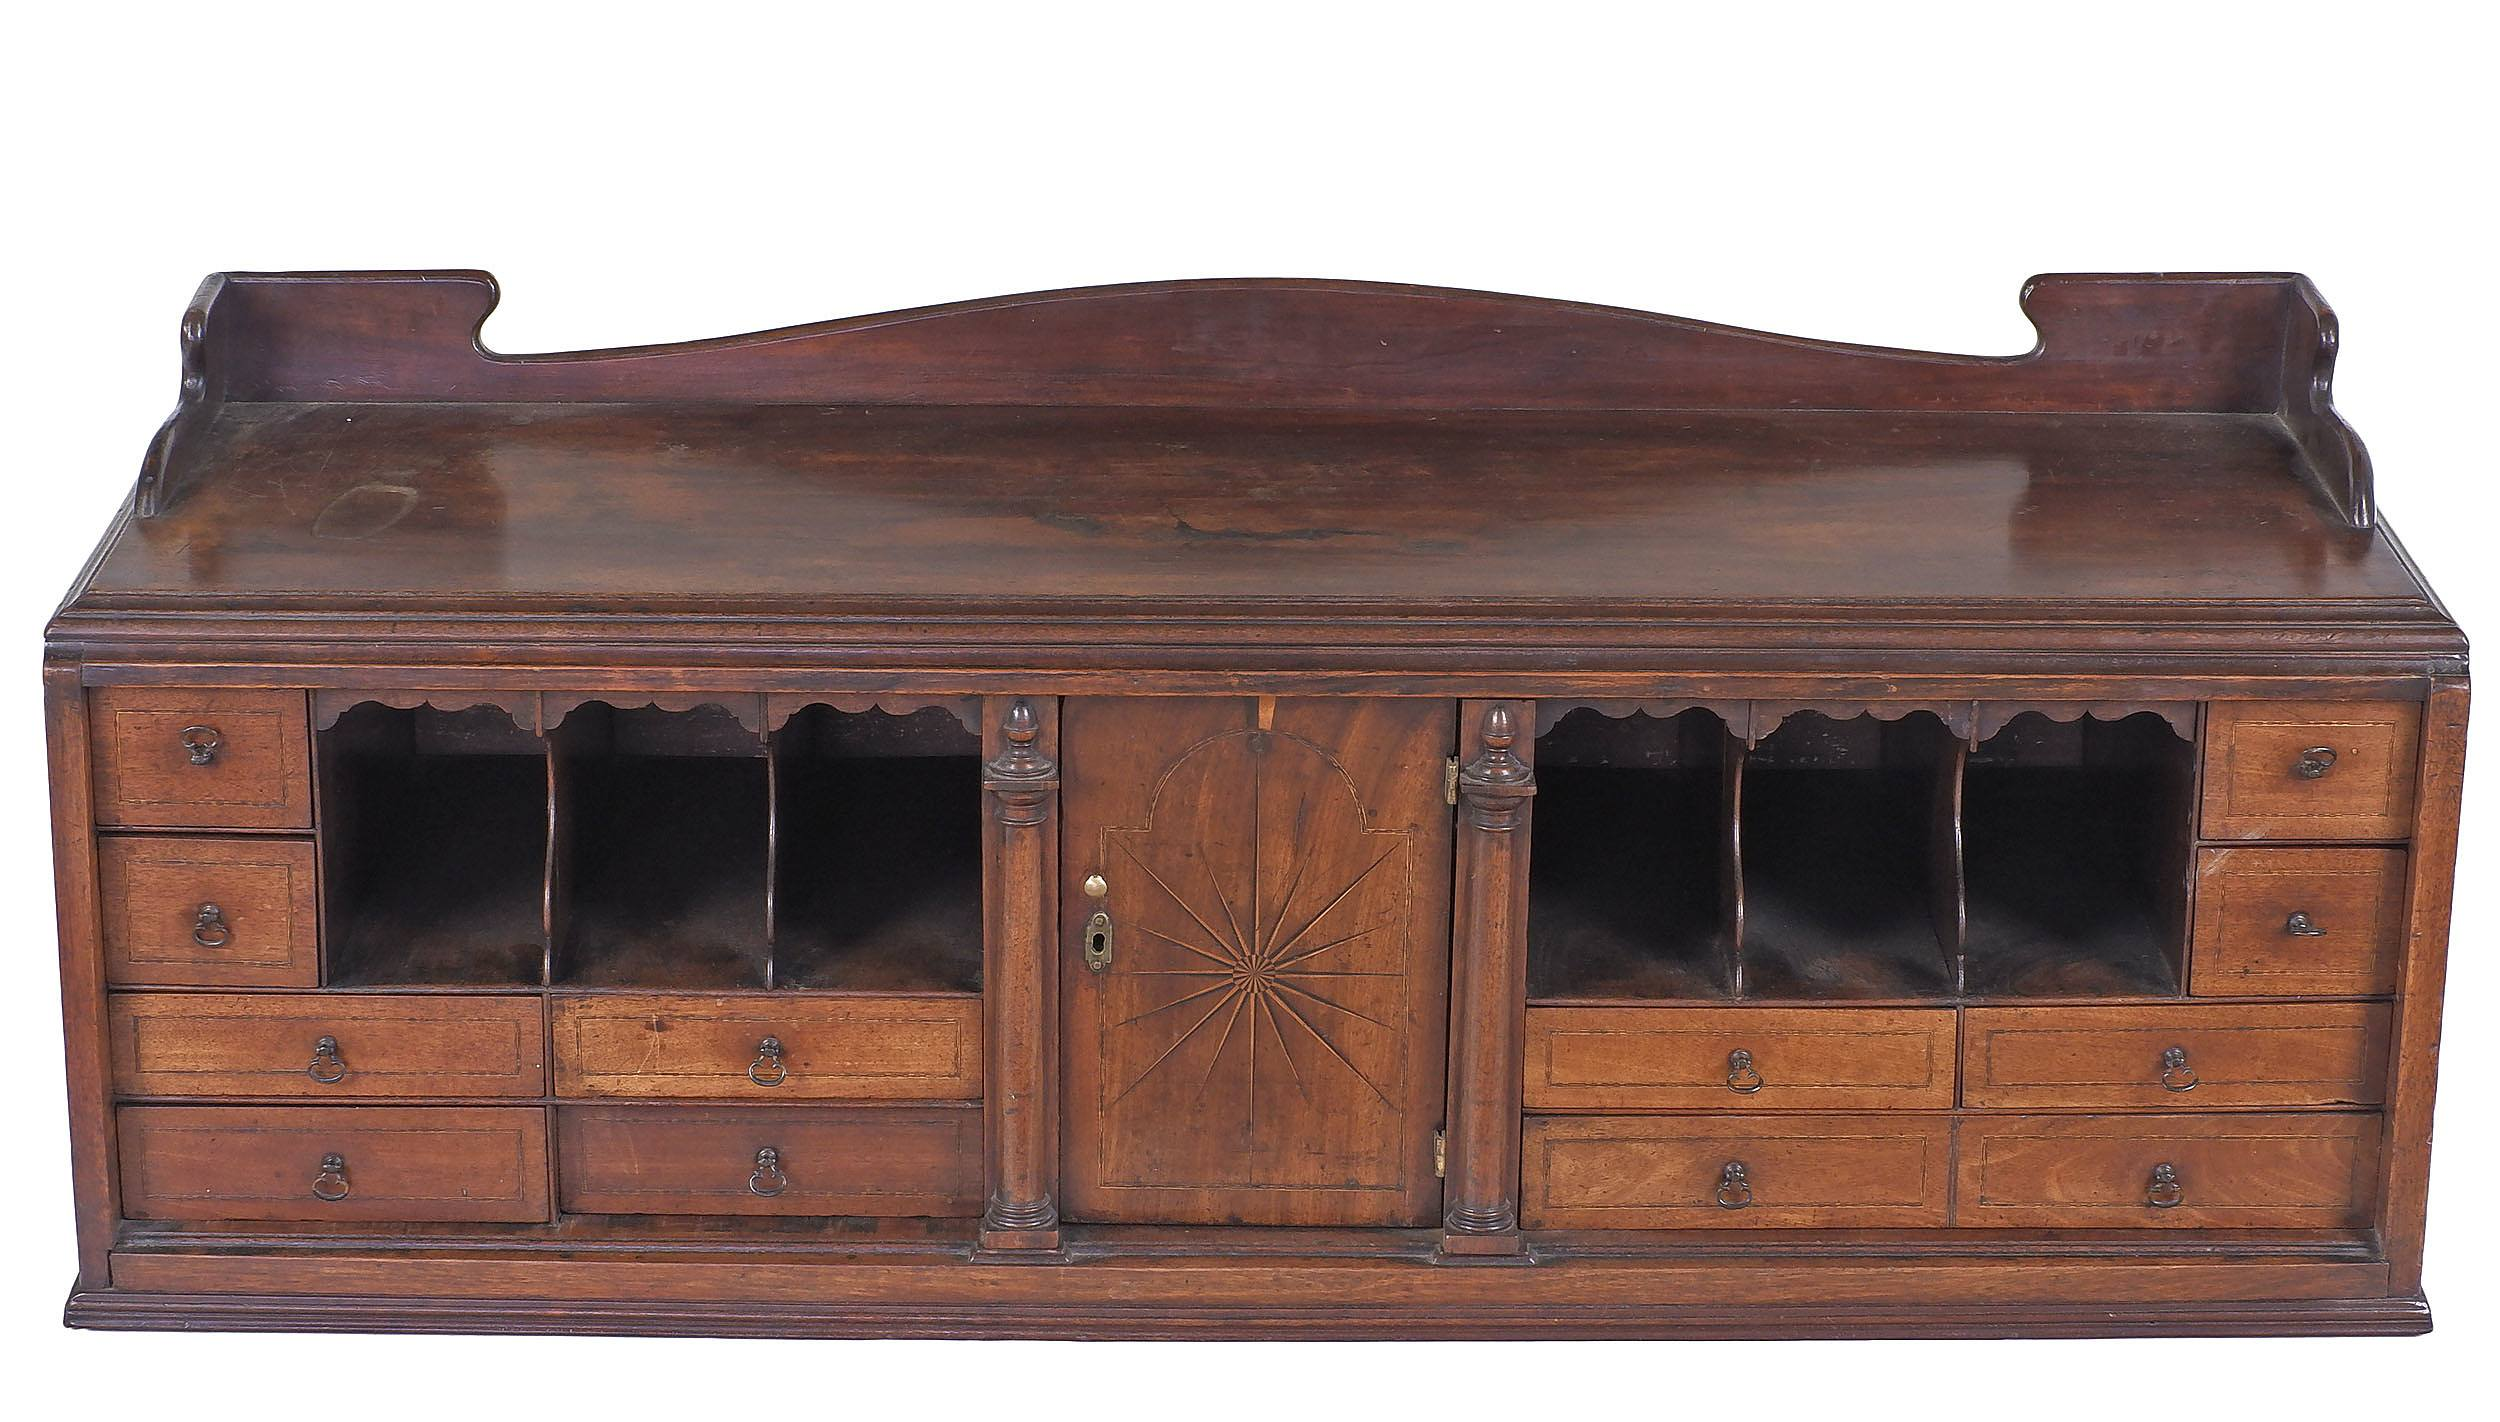 'George II Secretaire Internal Compartment with Ebony and Boxwood Starburst and String Inlay, Later Built Into Cabinet'